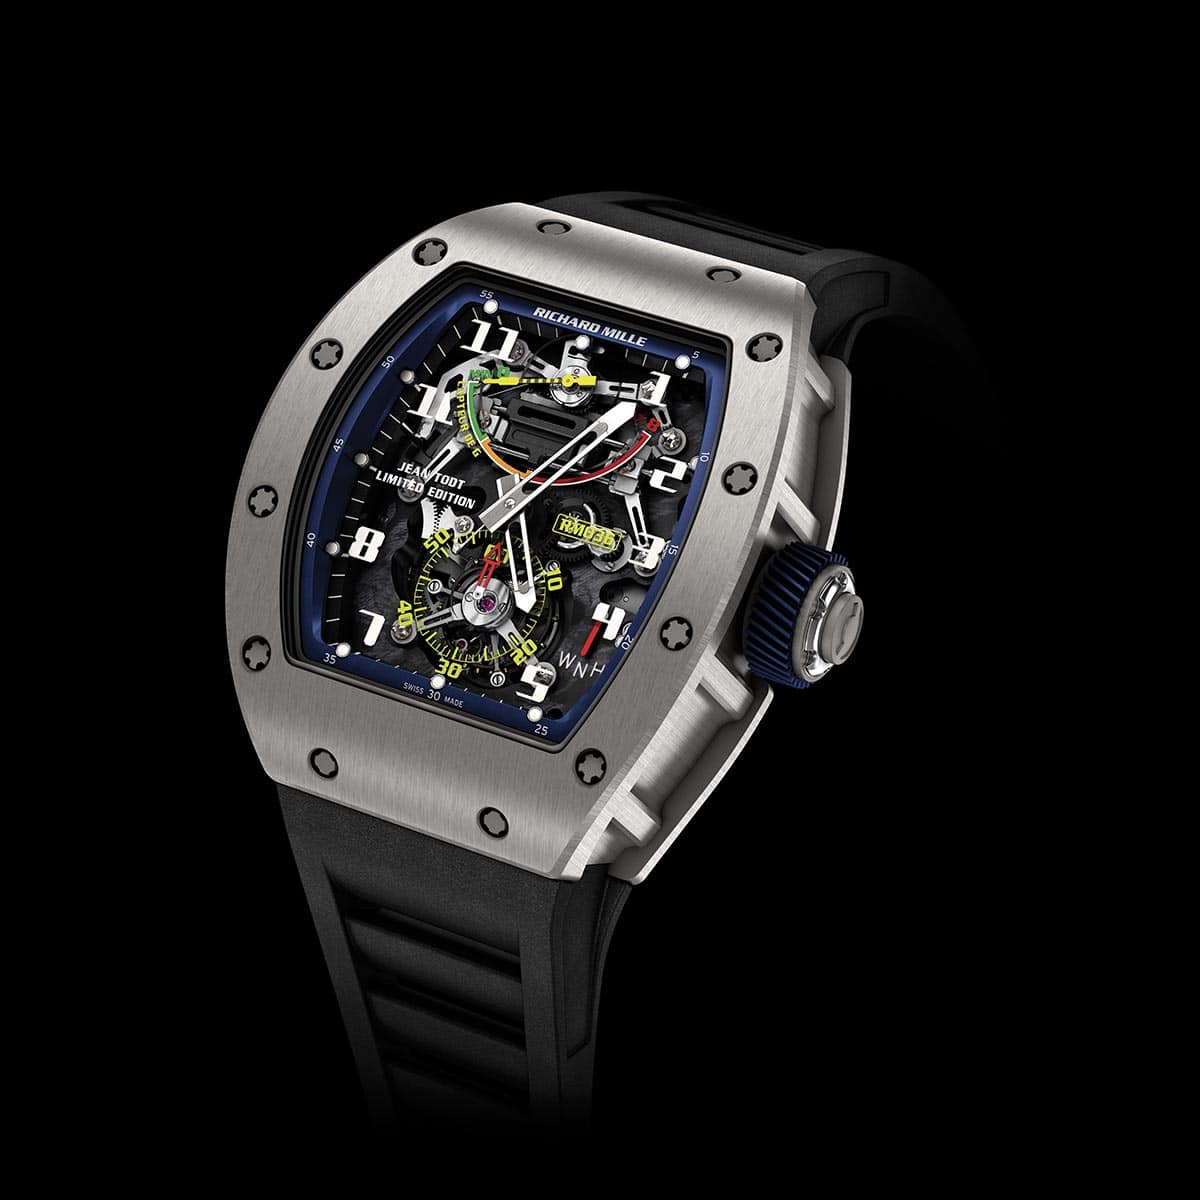 Richard Mille RM 036 Tourbillon Capteur de G Jean Todt Limited Edition